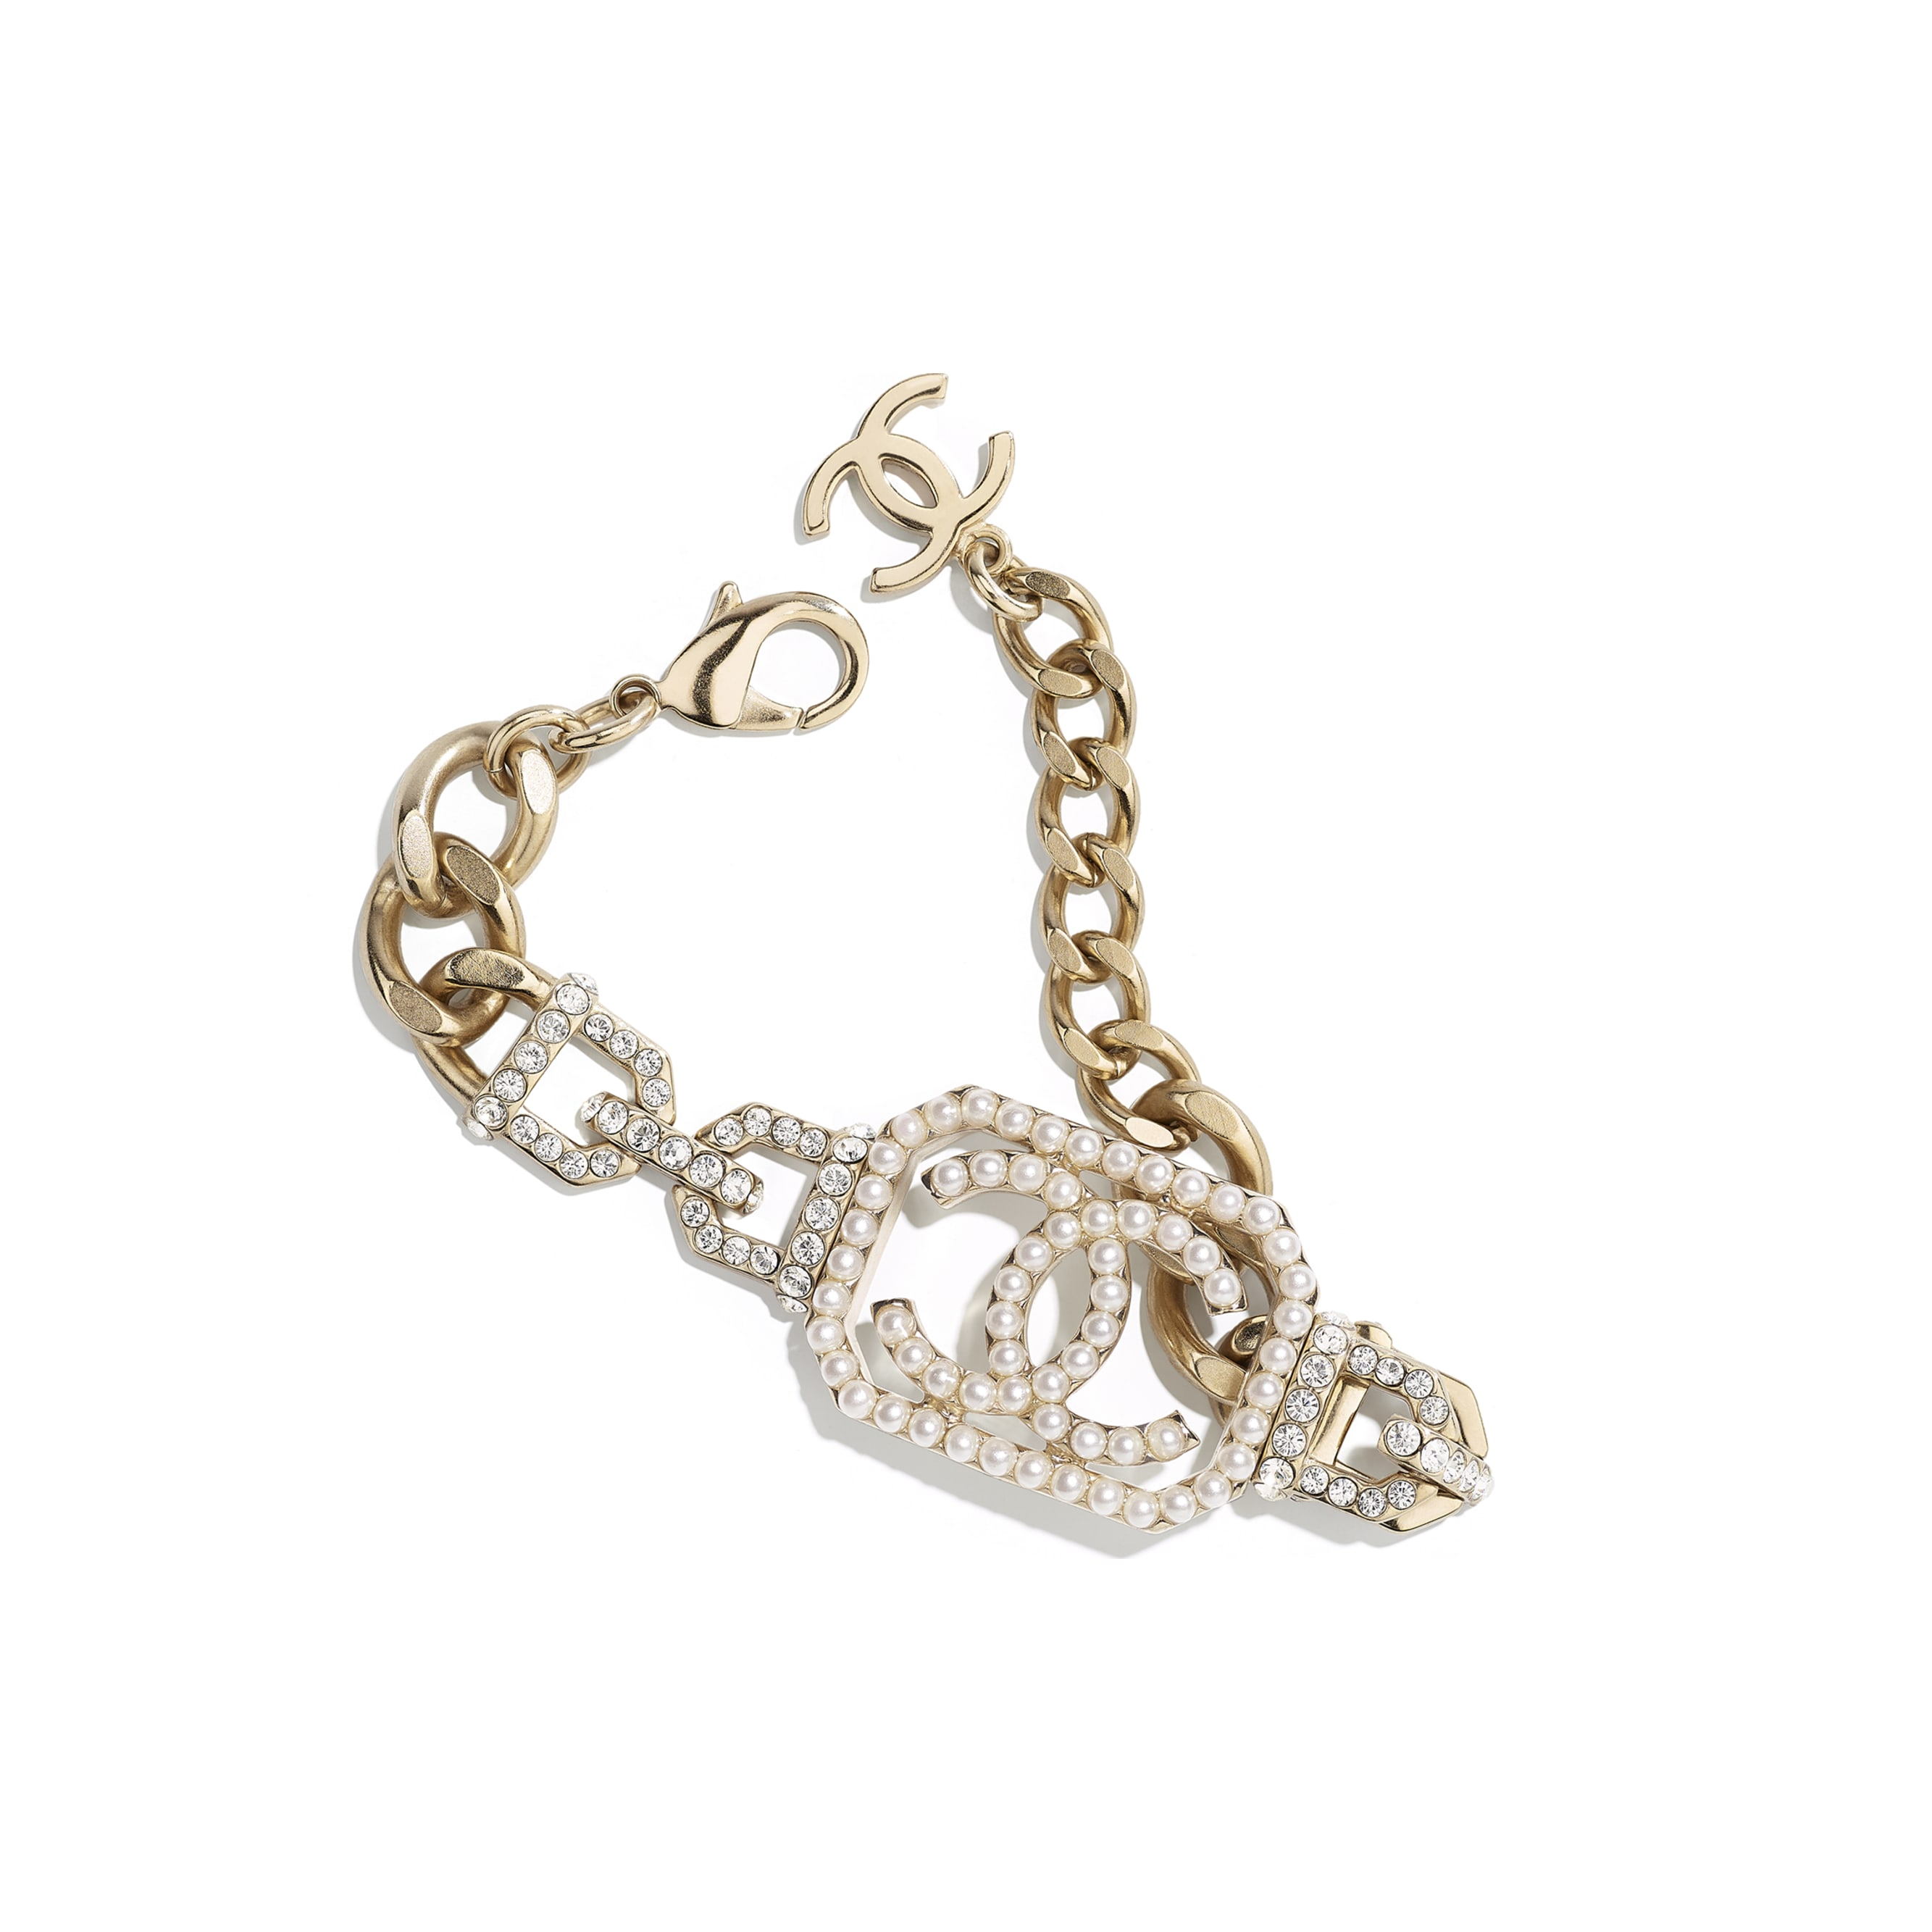 Bracelet - Gold, Pearly White & Crystal - Metal, Imitation Pearls & Diamanté - Default view - see standard sized version